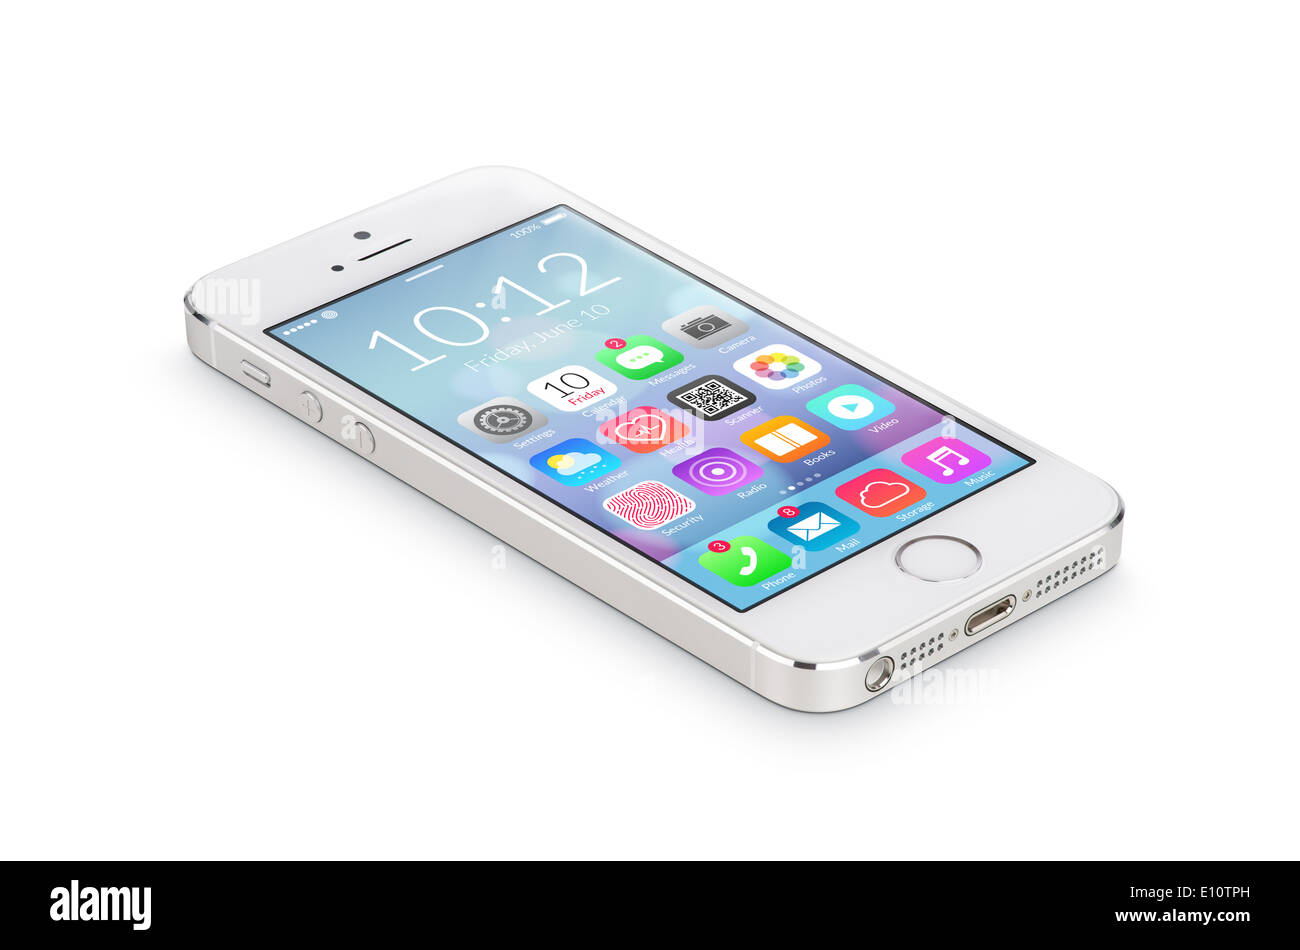 White modern smartphone with flat design application icons on the screen lies on the surface, isolated on white background. - Stock Image